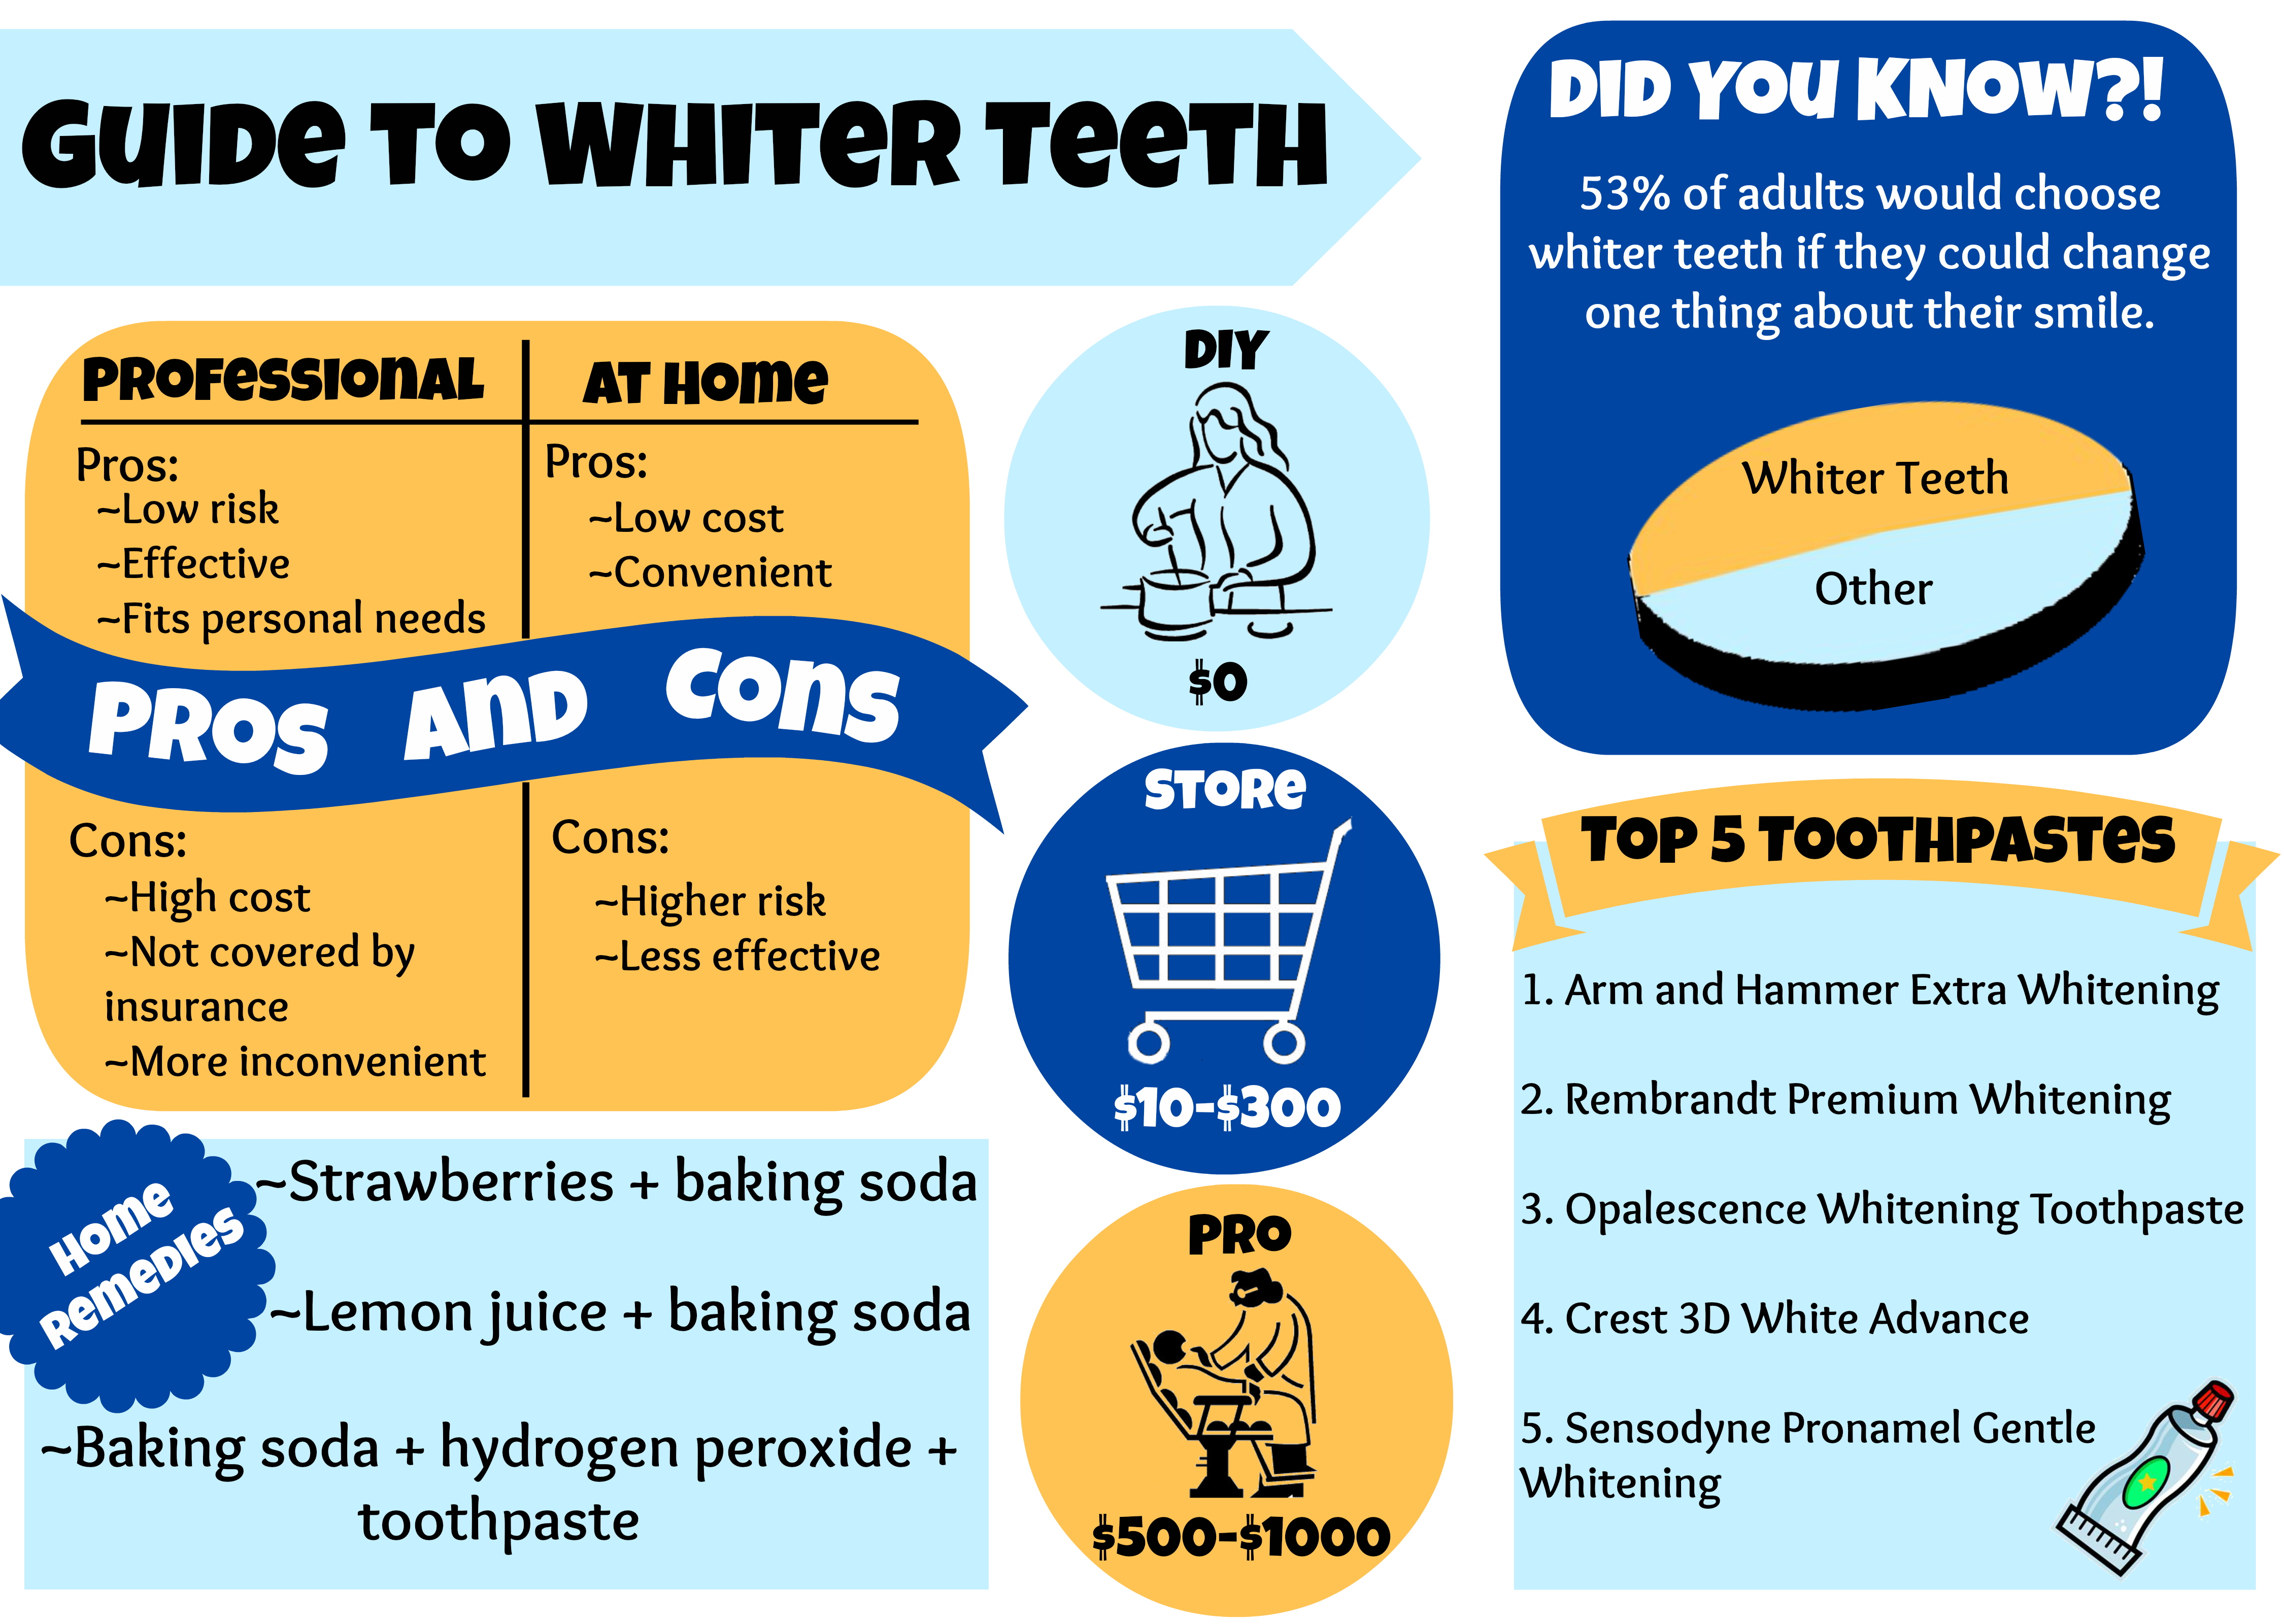 guide to whiter teeth